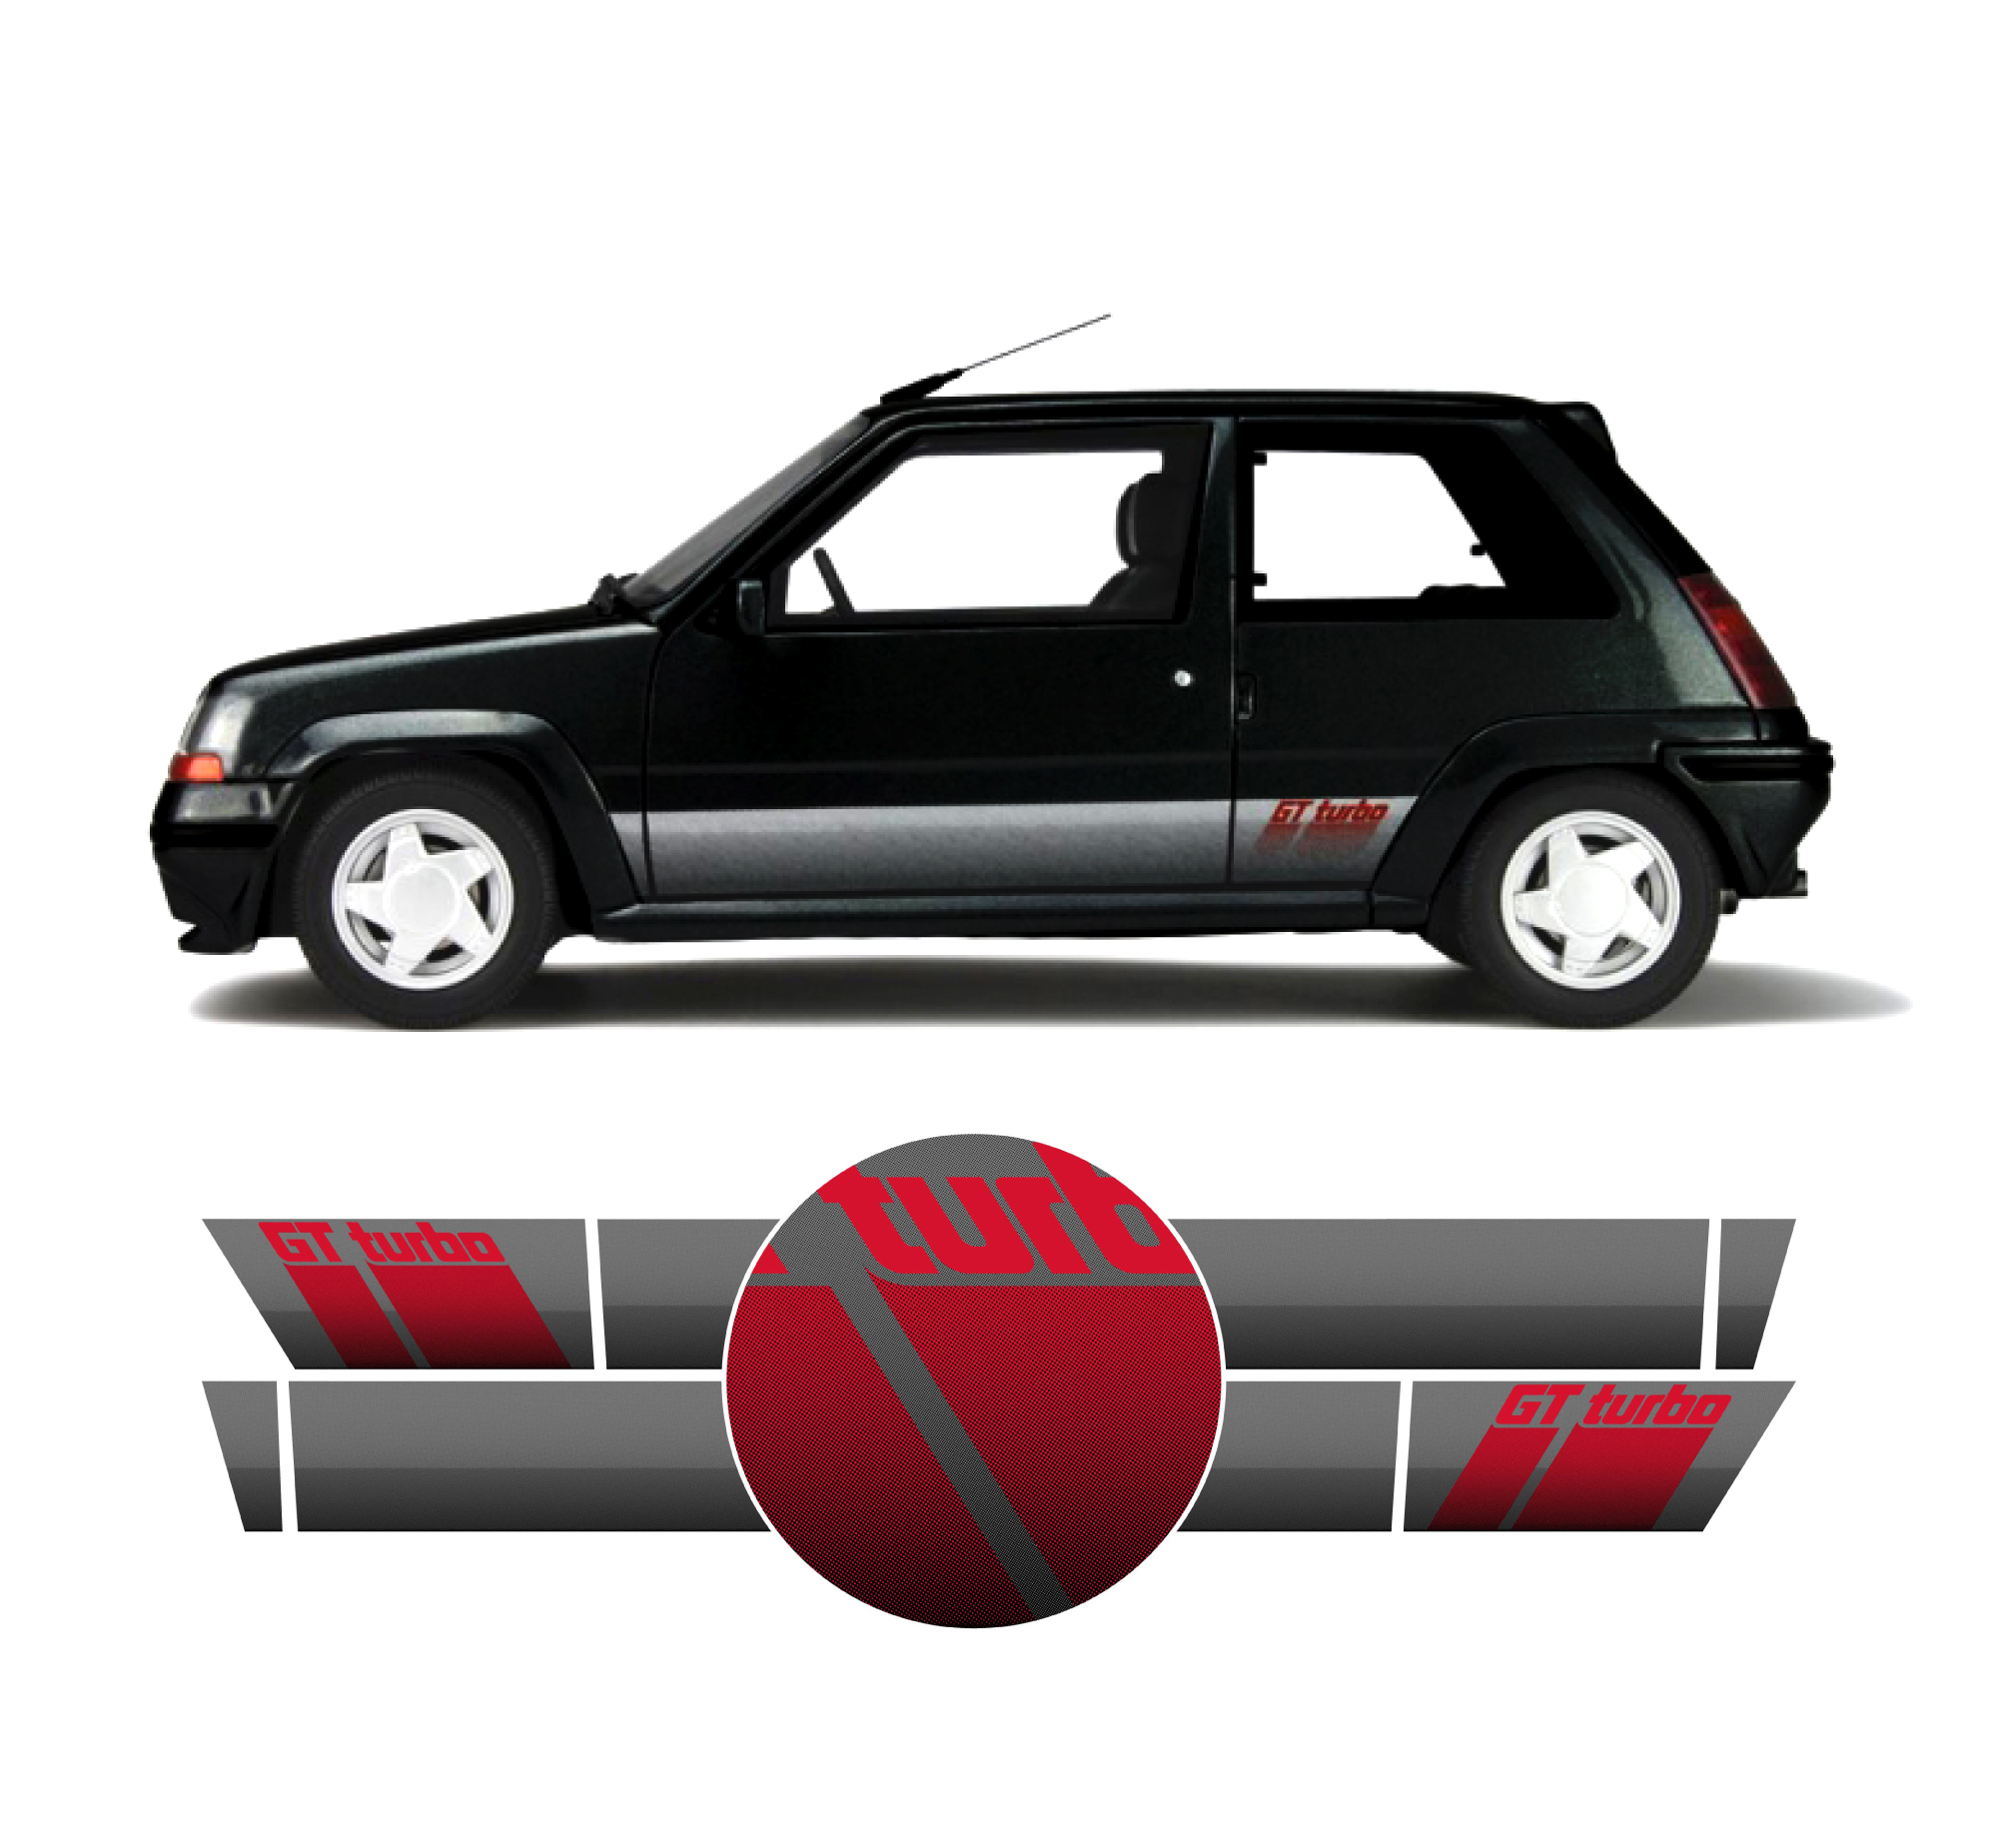 Renault 5 Turbo: RENAULT 5 GT TURBO (Phase 2)